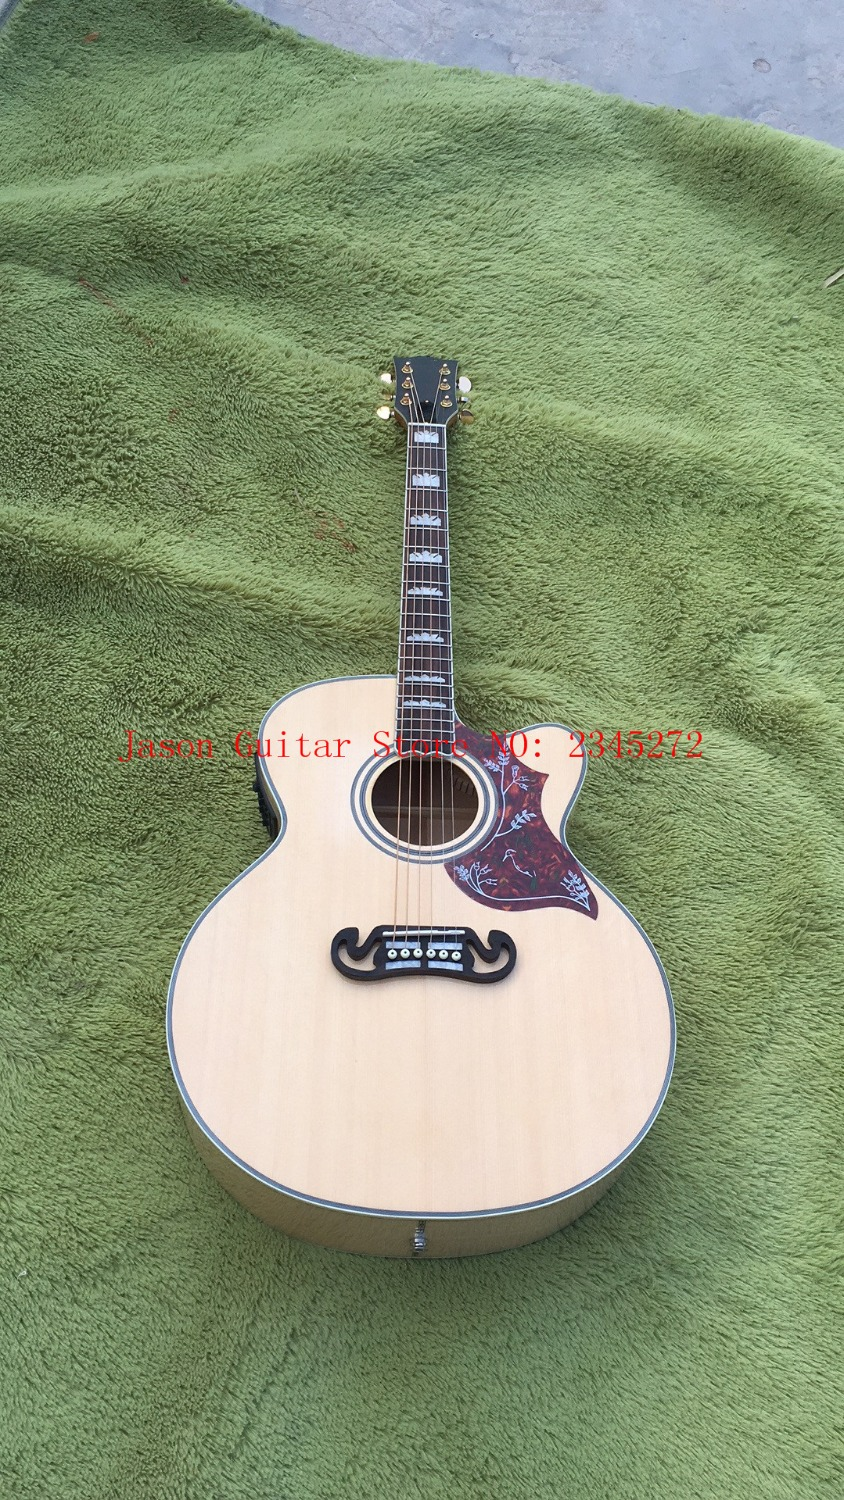 New + Factory + CUSTOM J200 acoustic guitar Cutaway J200 electric acoustic guitar hummingbird pickguard Free Shipping SJ200 free shipping 2017 new arrival esp blood tears jaw custom electric guitar james hetfield esp guitar 150717